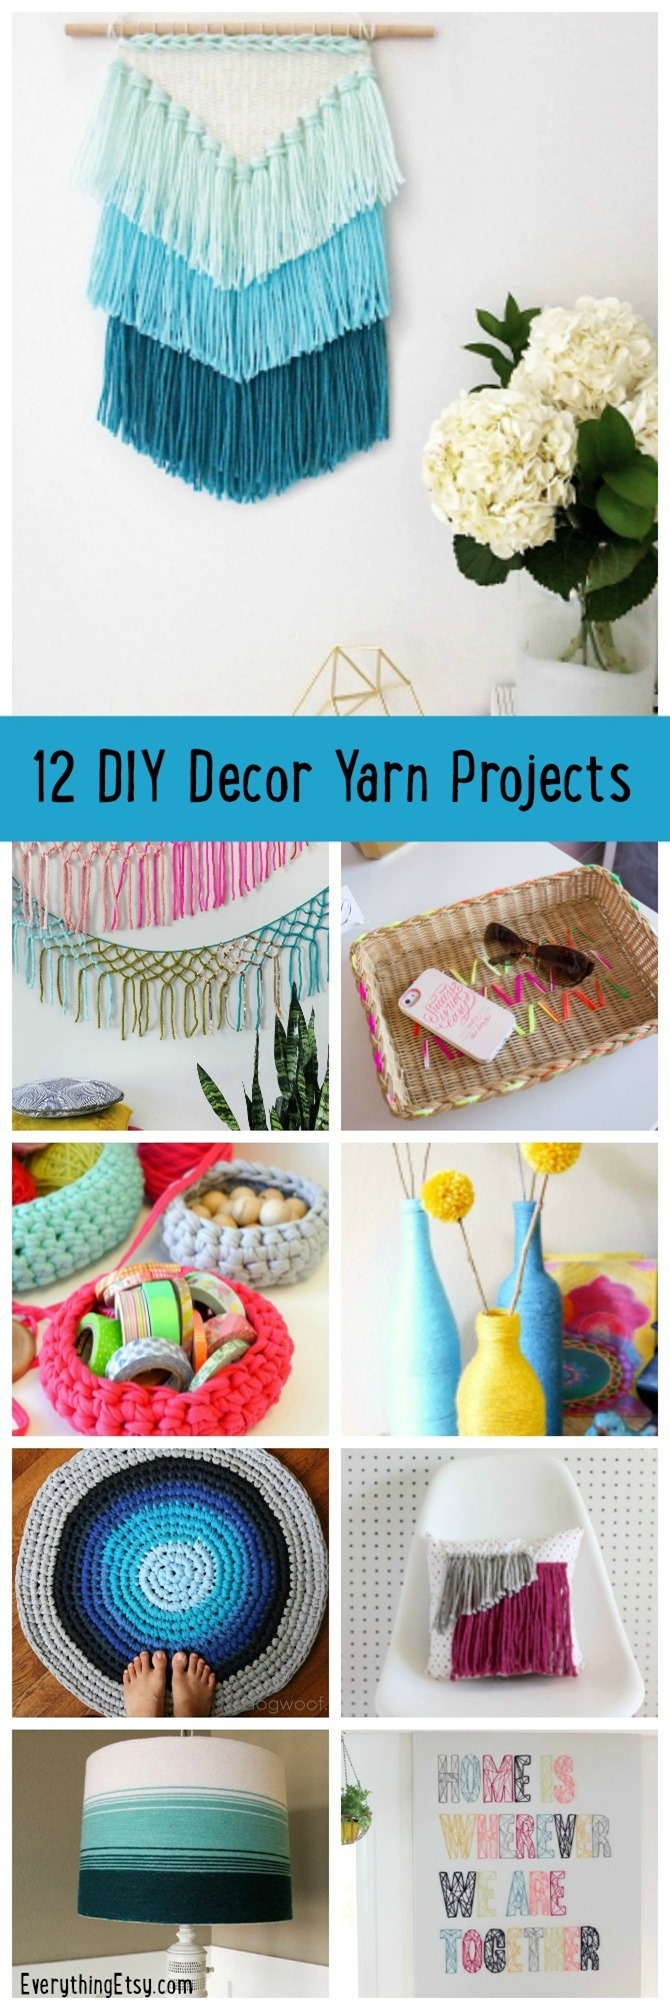 12 DIY Decor Yarn Projects - EverythingEtsy.com